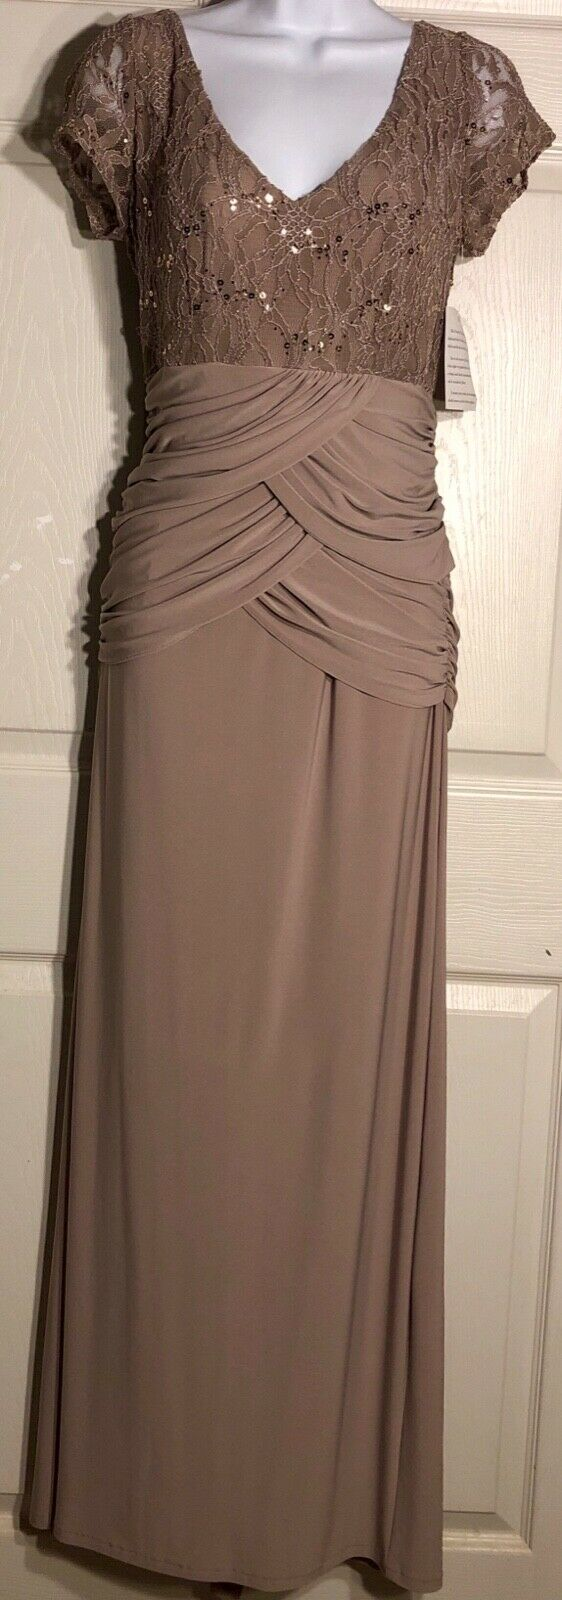 NWOT URSULA OF SWITZERLAND SHORT SLEEVE LACE SEQUINZ TAUPE CREPE GOWN SIZE 8 - Outlet Values